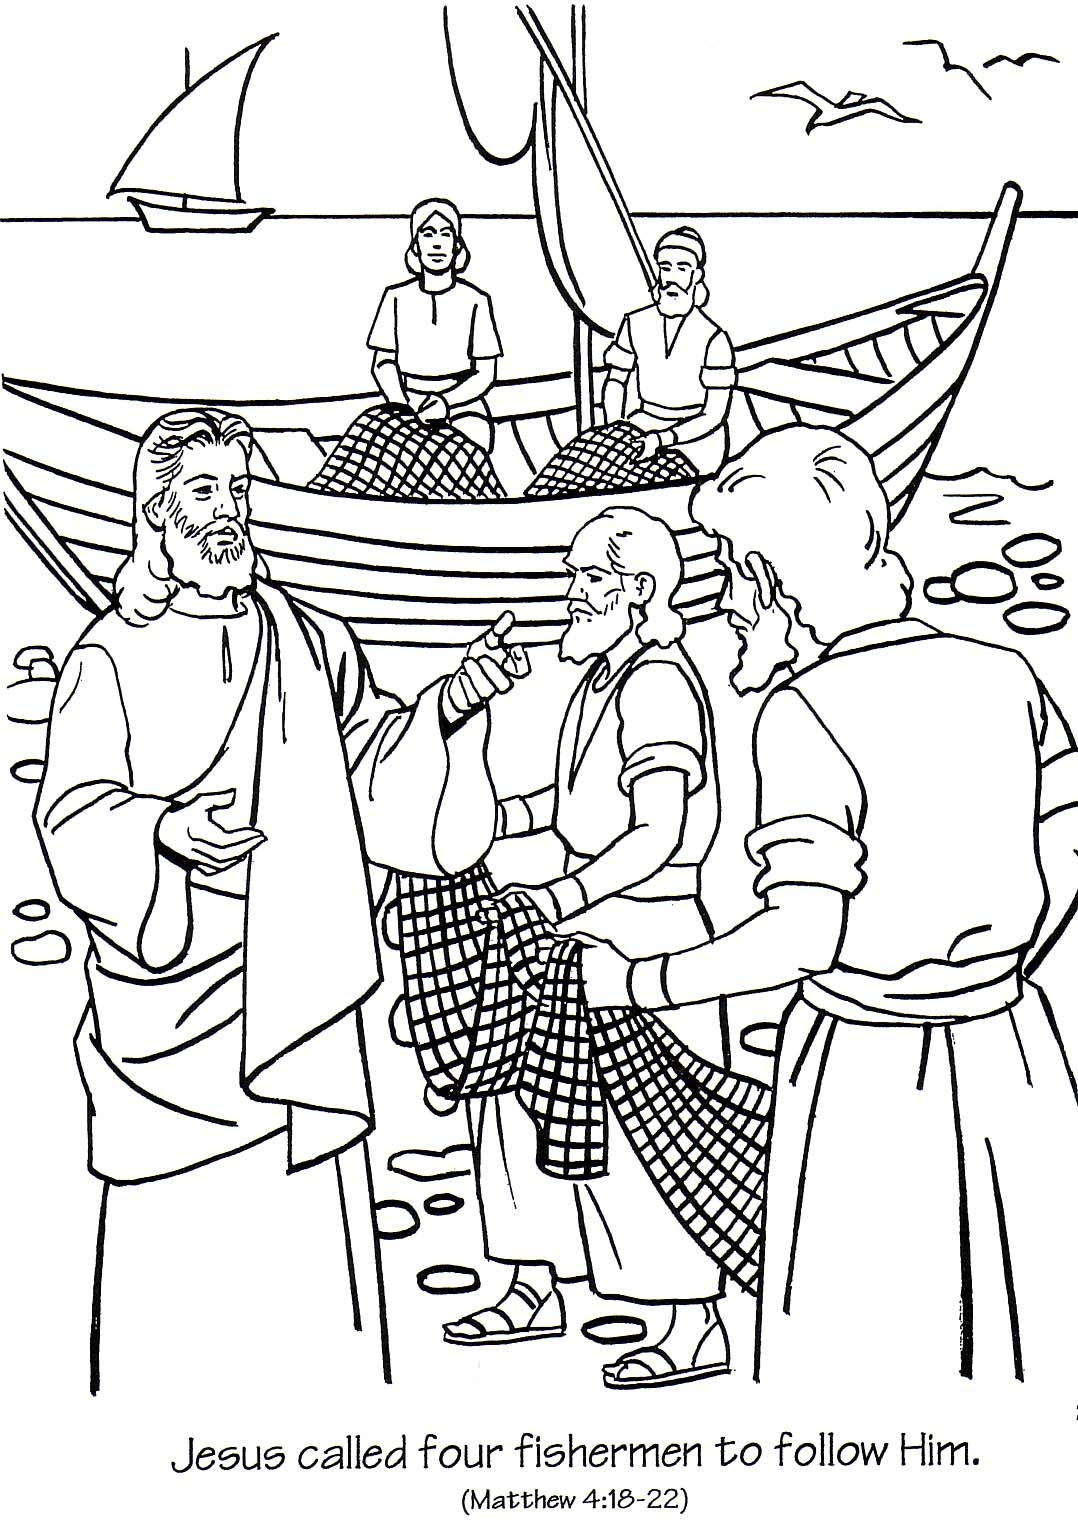 27 Jesus Calms the Storm Coloring Page Images | FREE COLORING PAGES ...